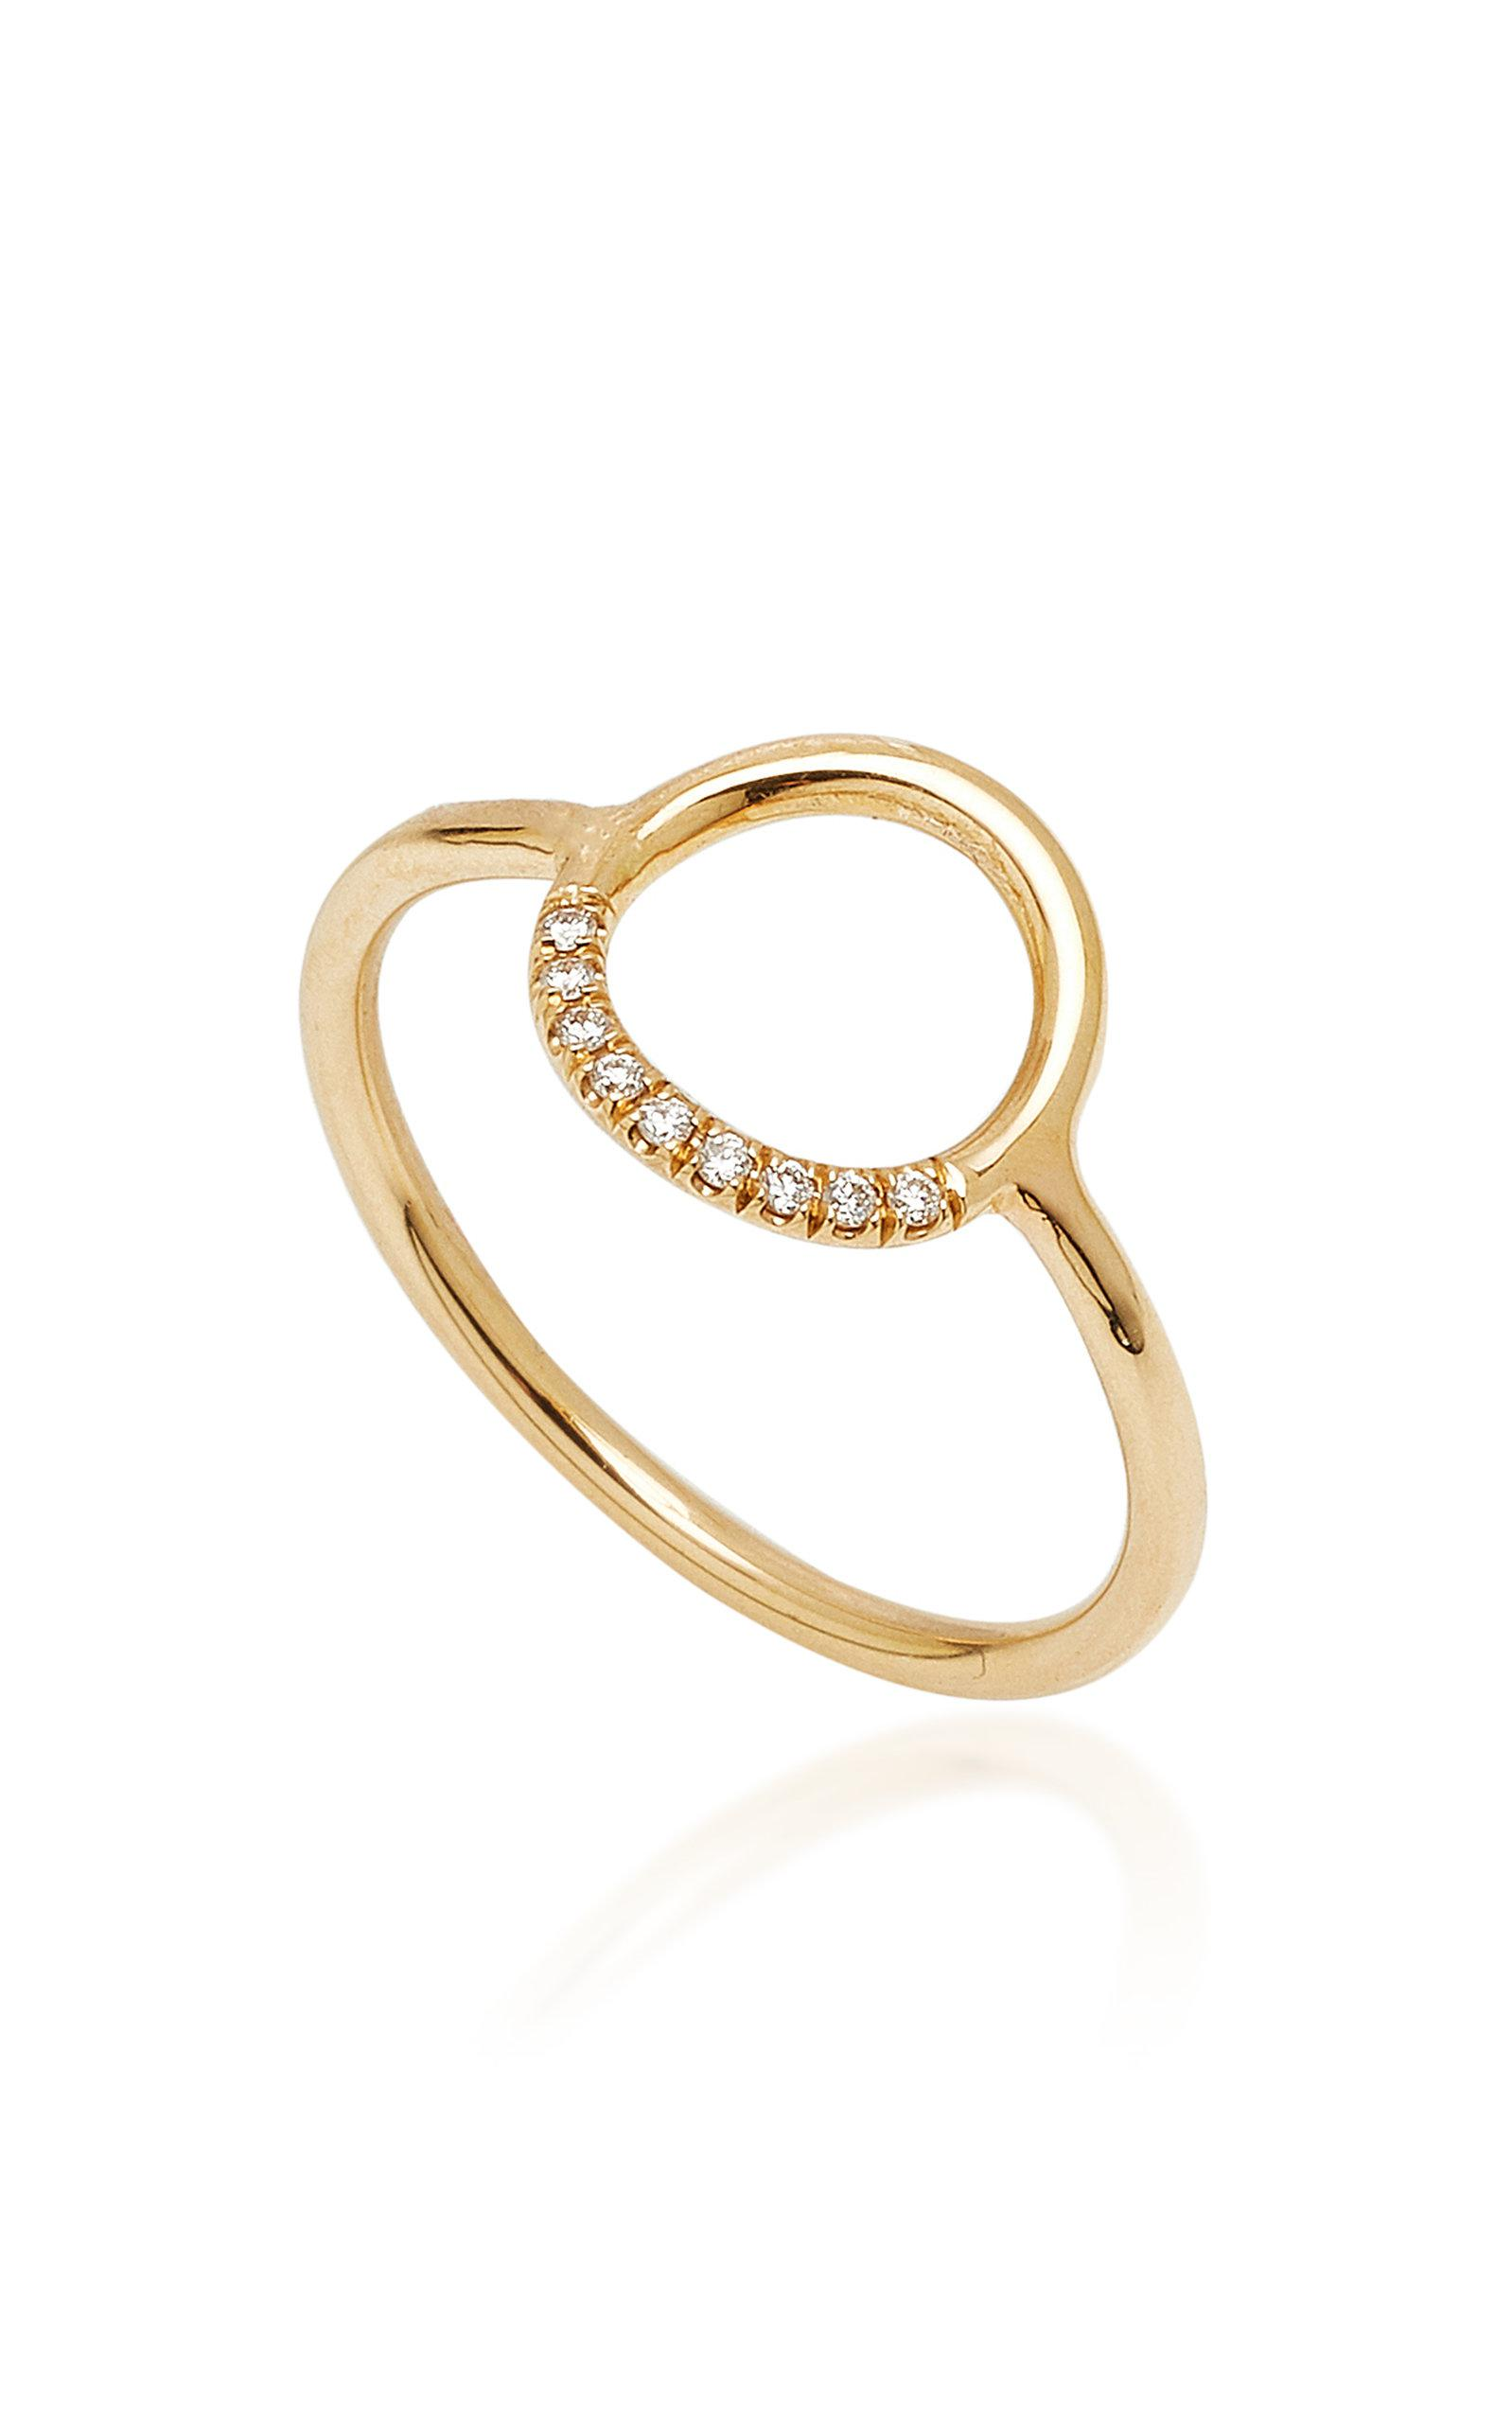 Zoe Chicco 14k Gold Small Pave Cirlce Ring in Metallic